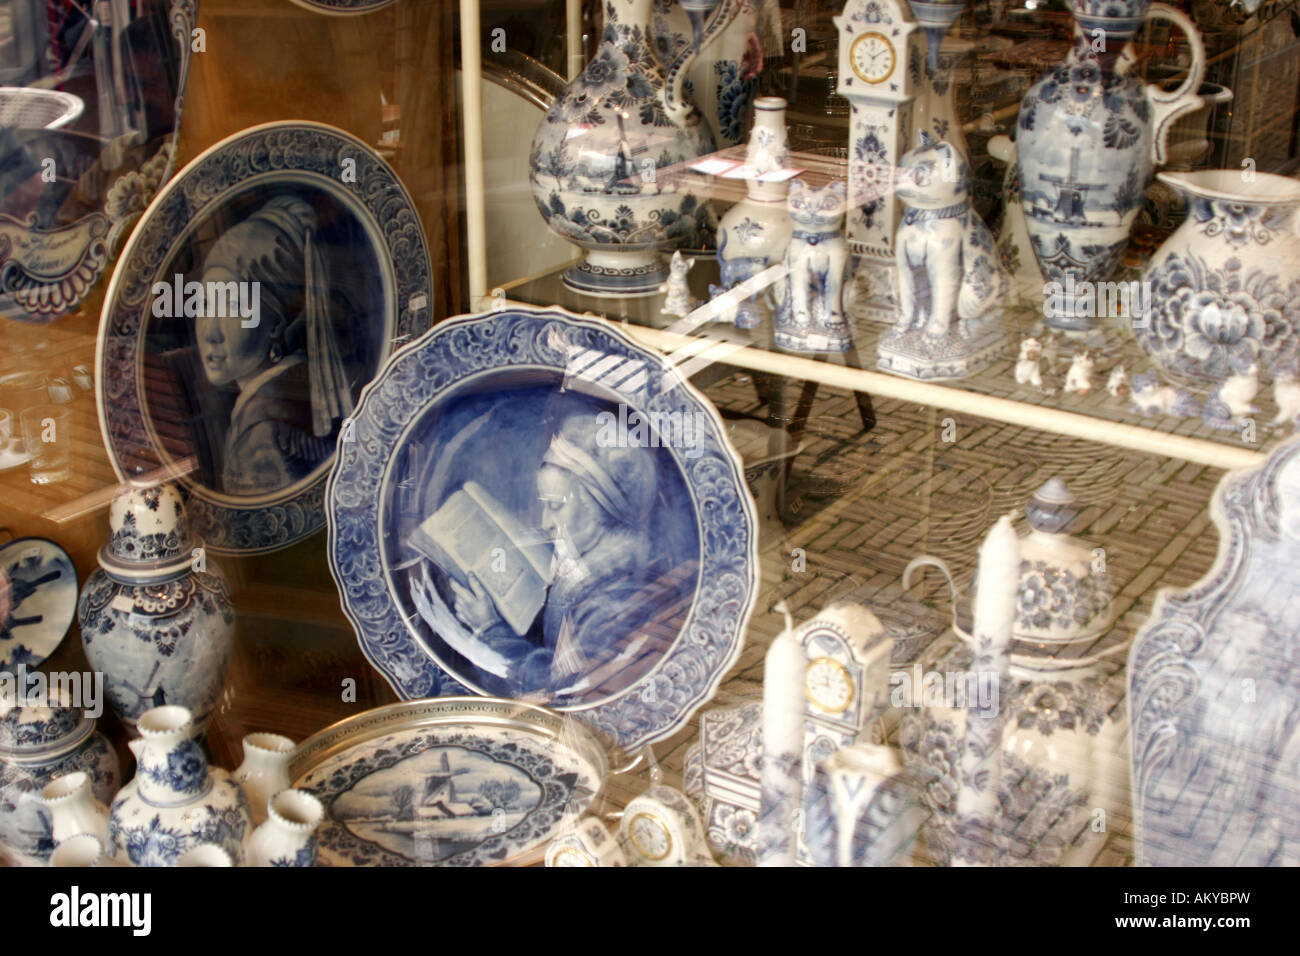 Art and kitsch as souvenirs from Delft . Delftware , or Delft pottery , is blue and white pottery traditionally - Stock Image